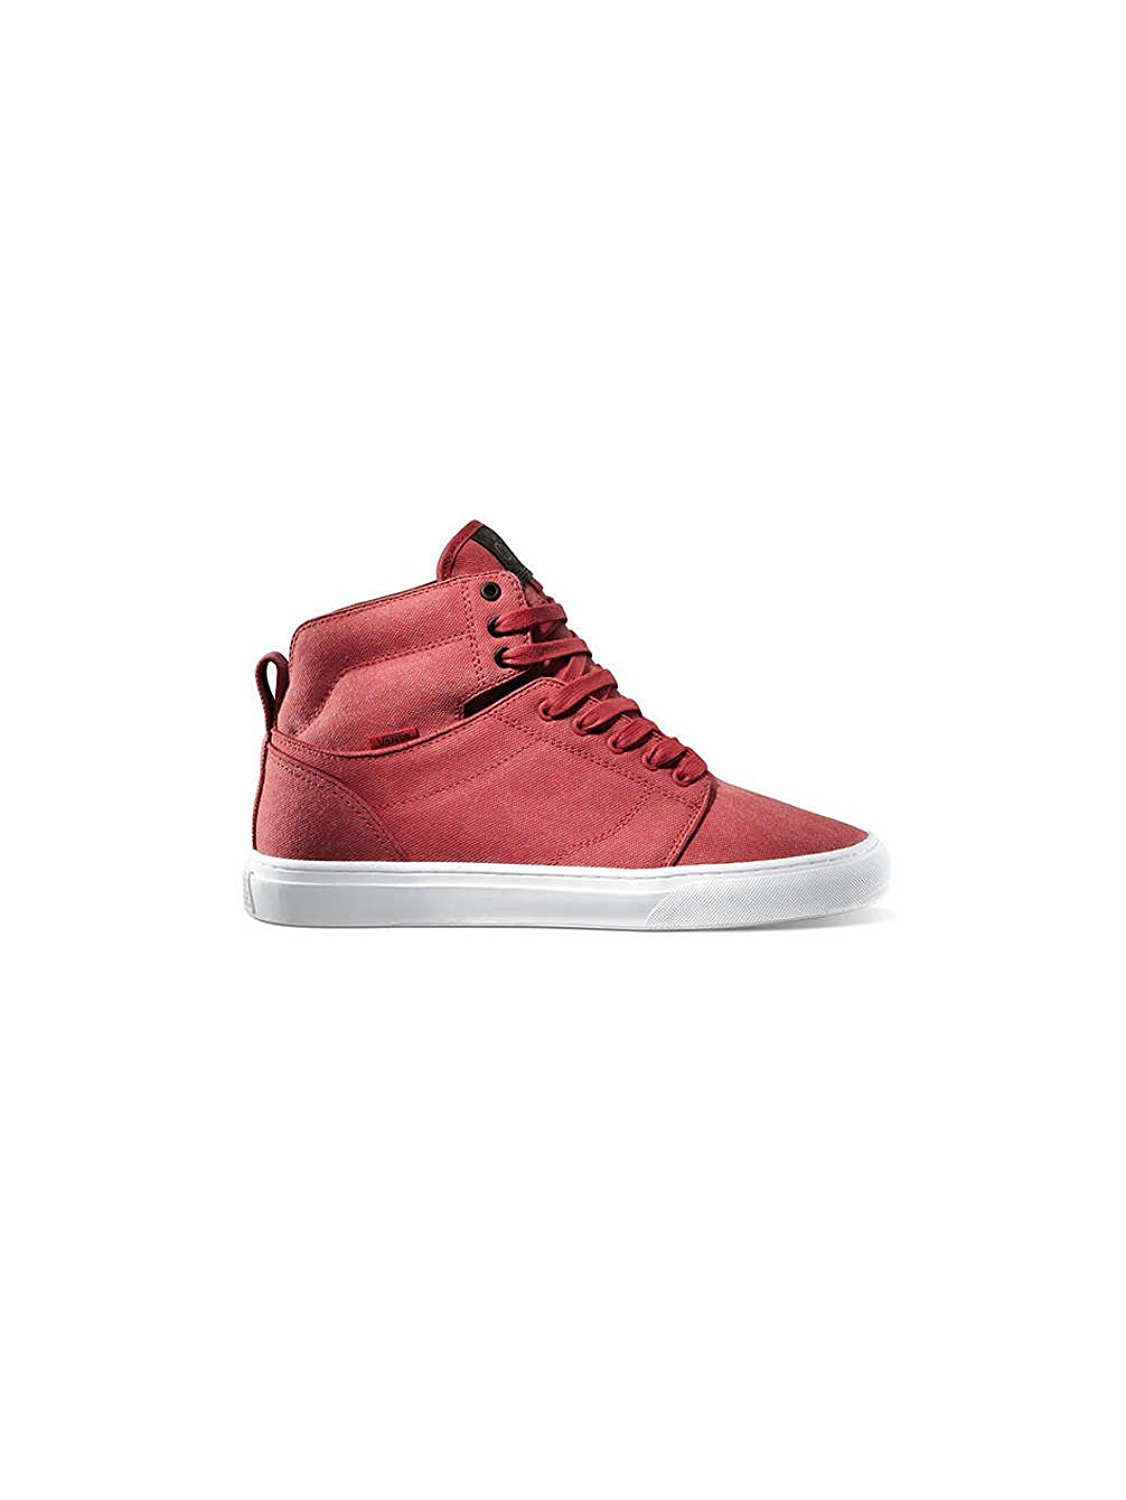 18316a1edb Get Quotations · Vans OTW Alomar Stone Washed Canvas Red VN-0KX06CO Shoes  Men s Size 12